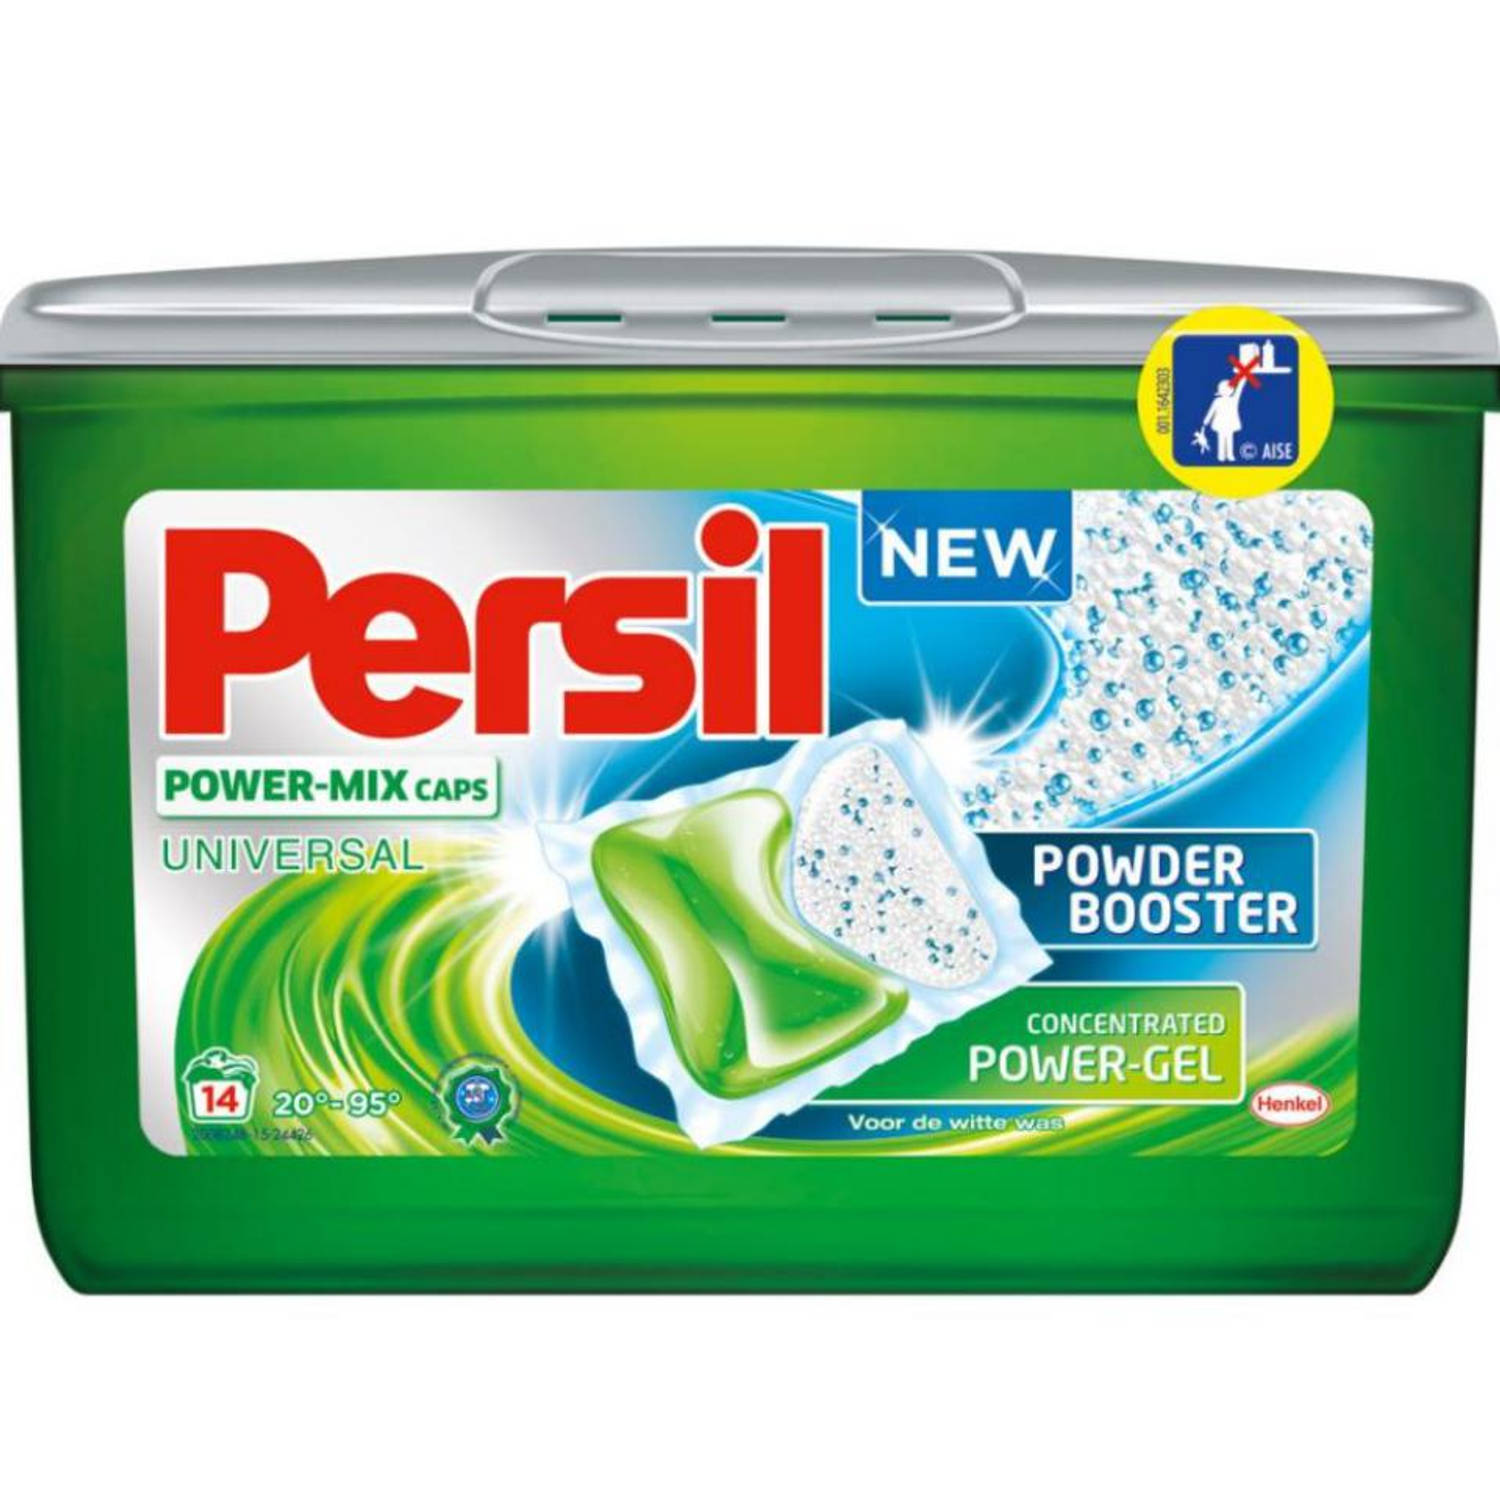 Persil Power-Mix Caps Universal - 14 stuks